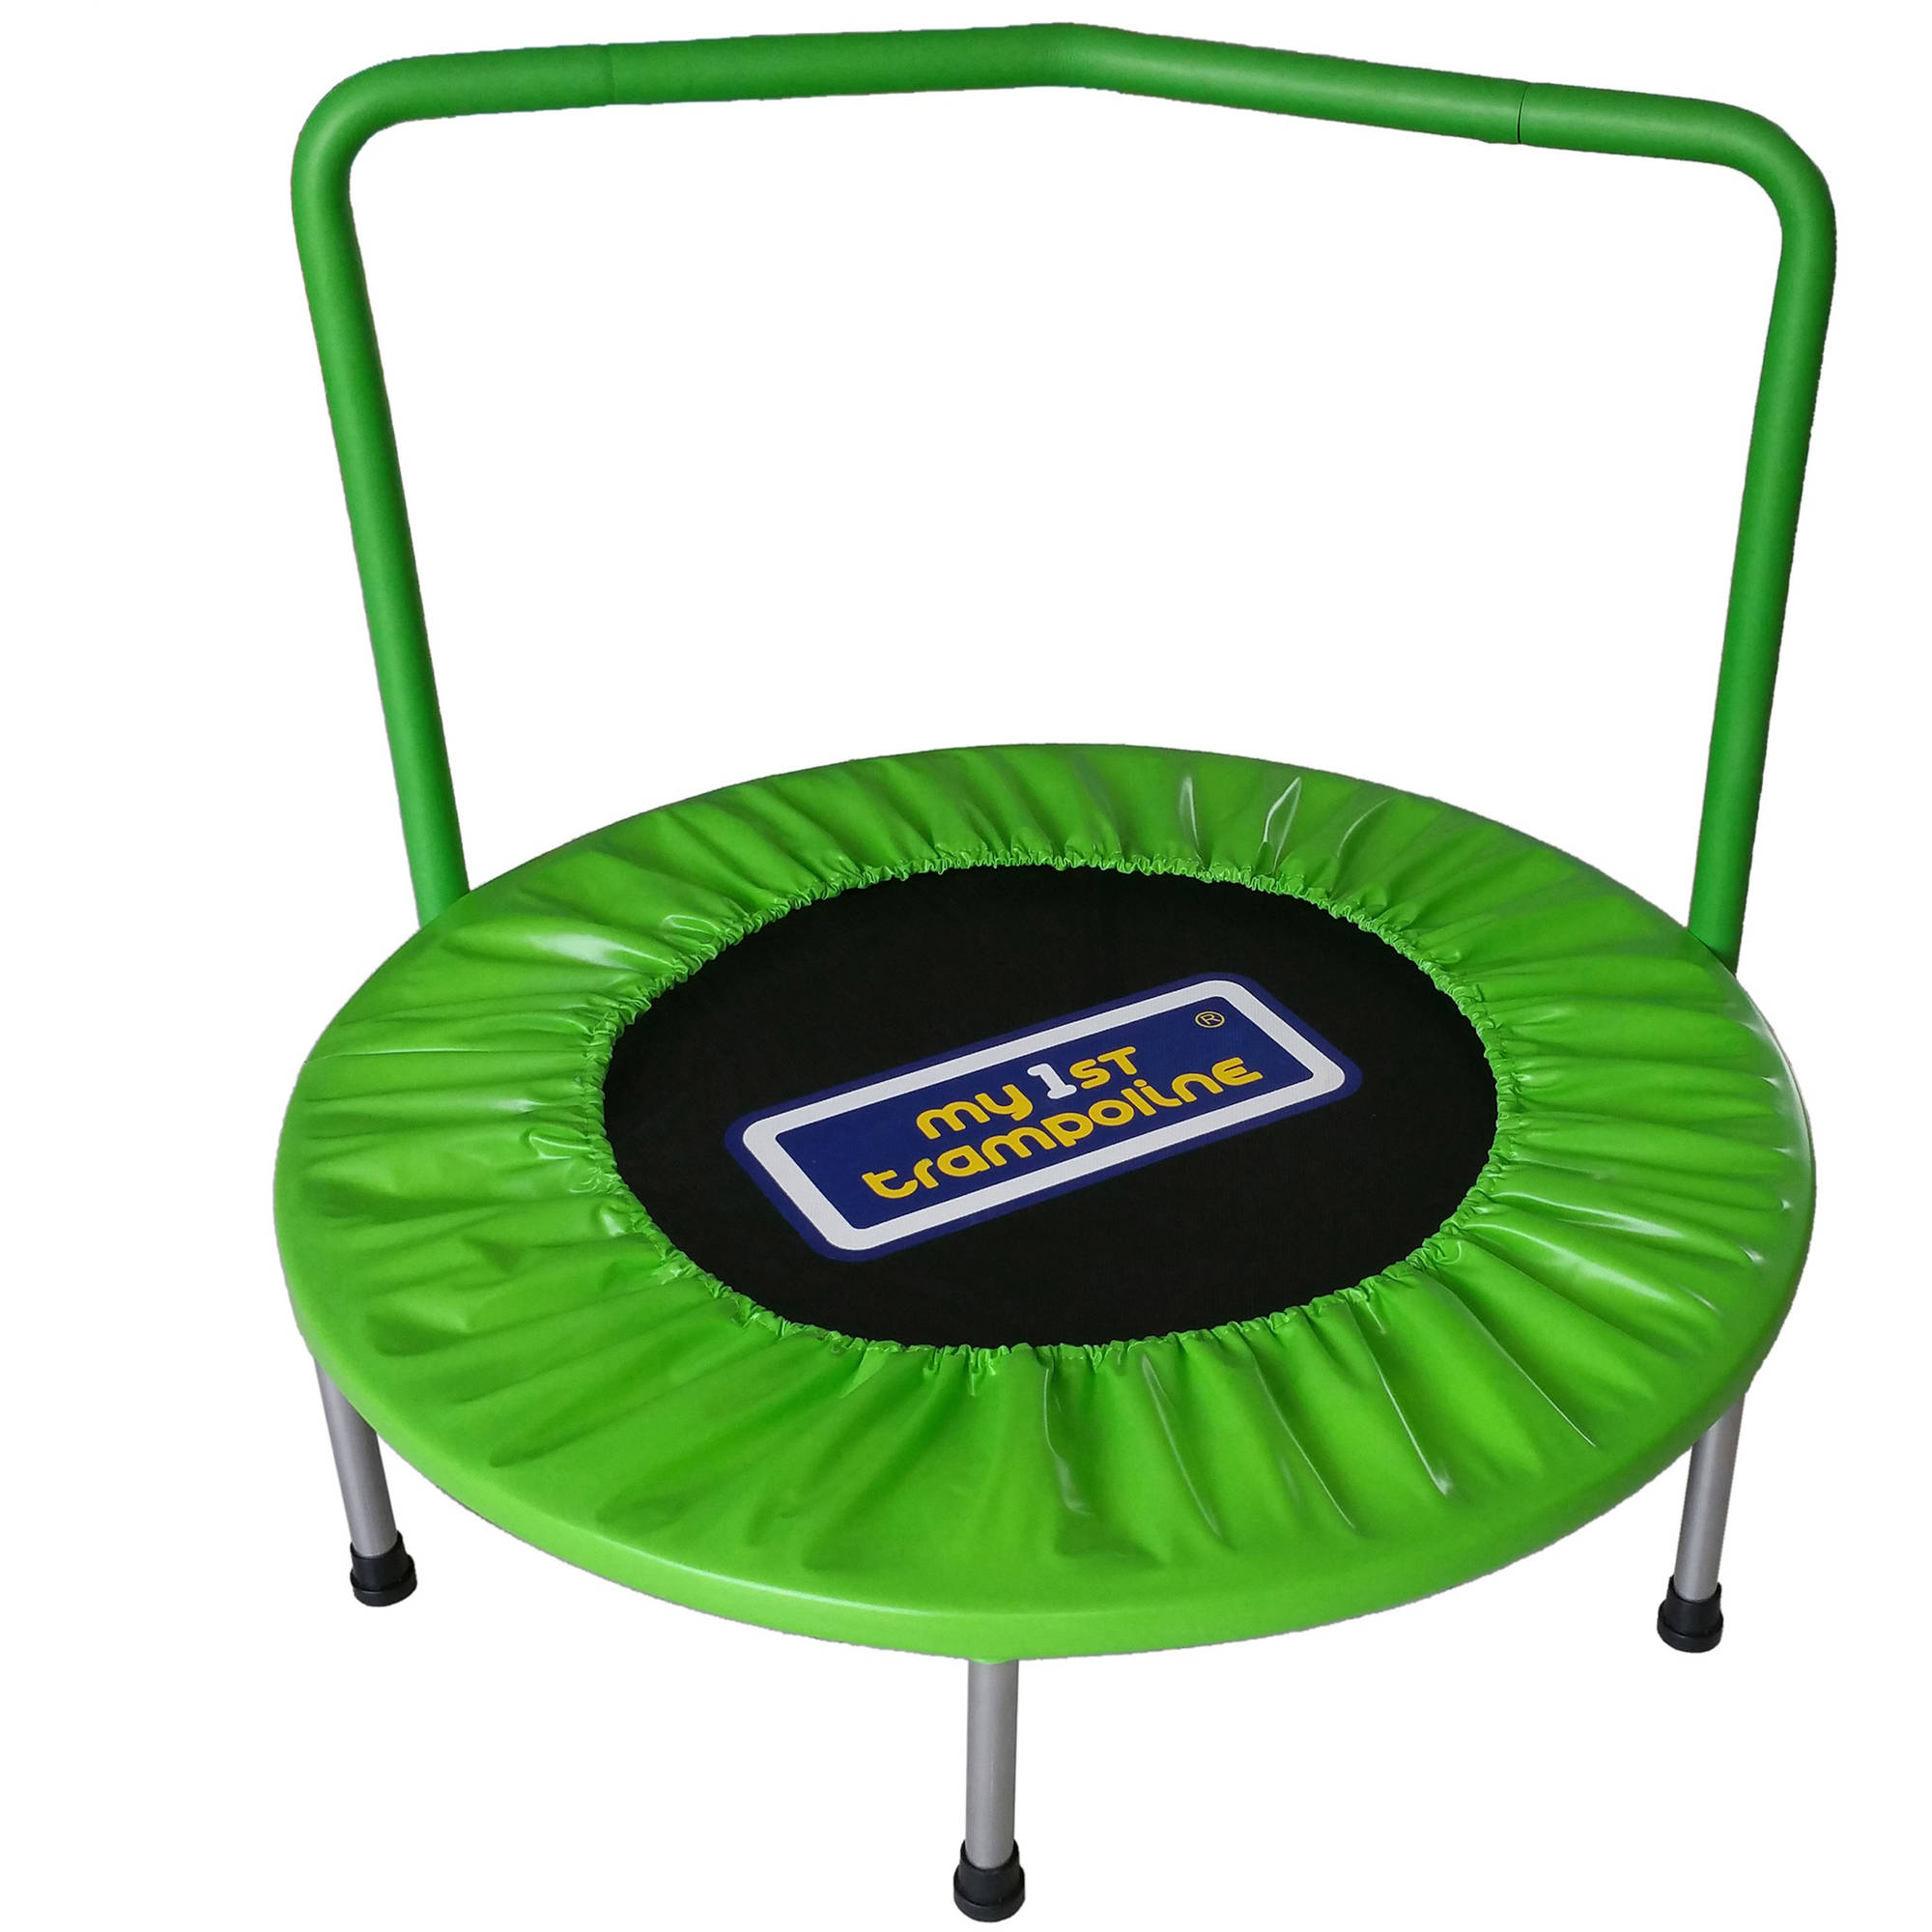 My First Trampoline 36-Inch Mini Trampoline, Lime Green